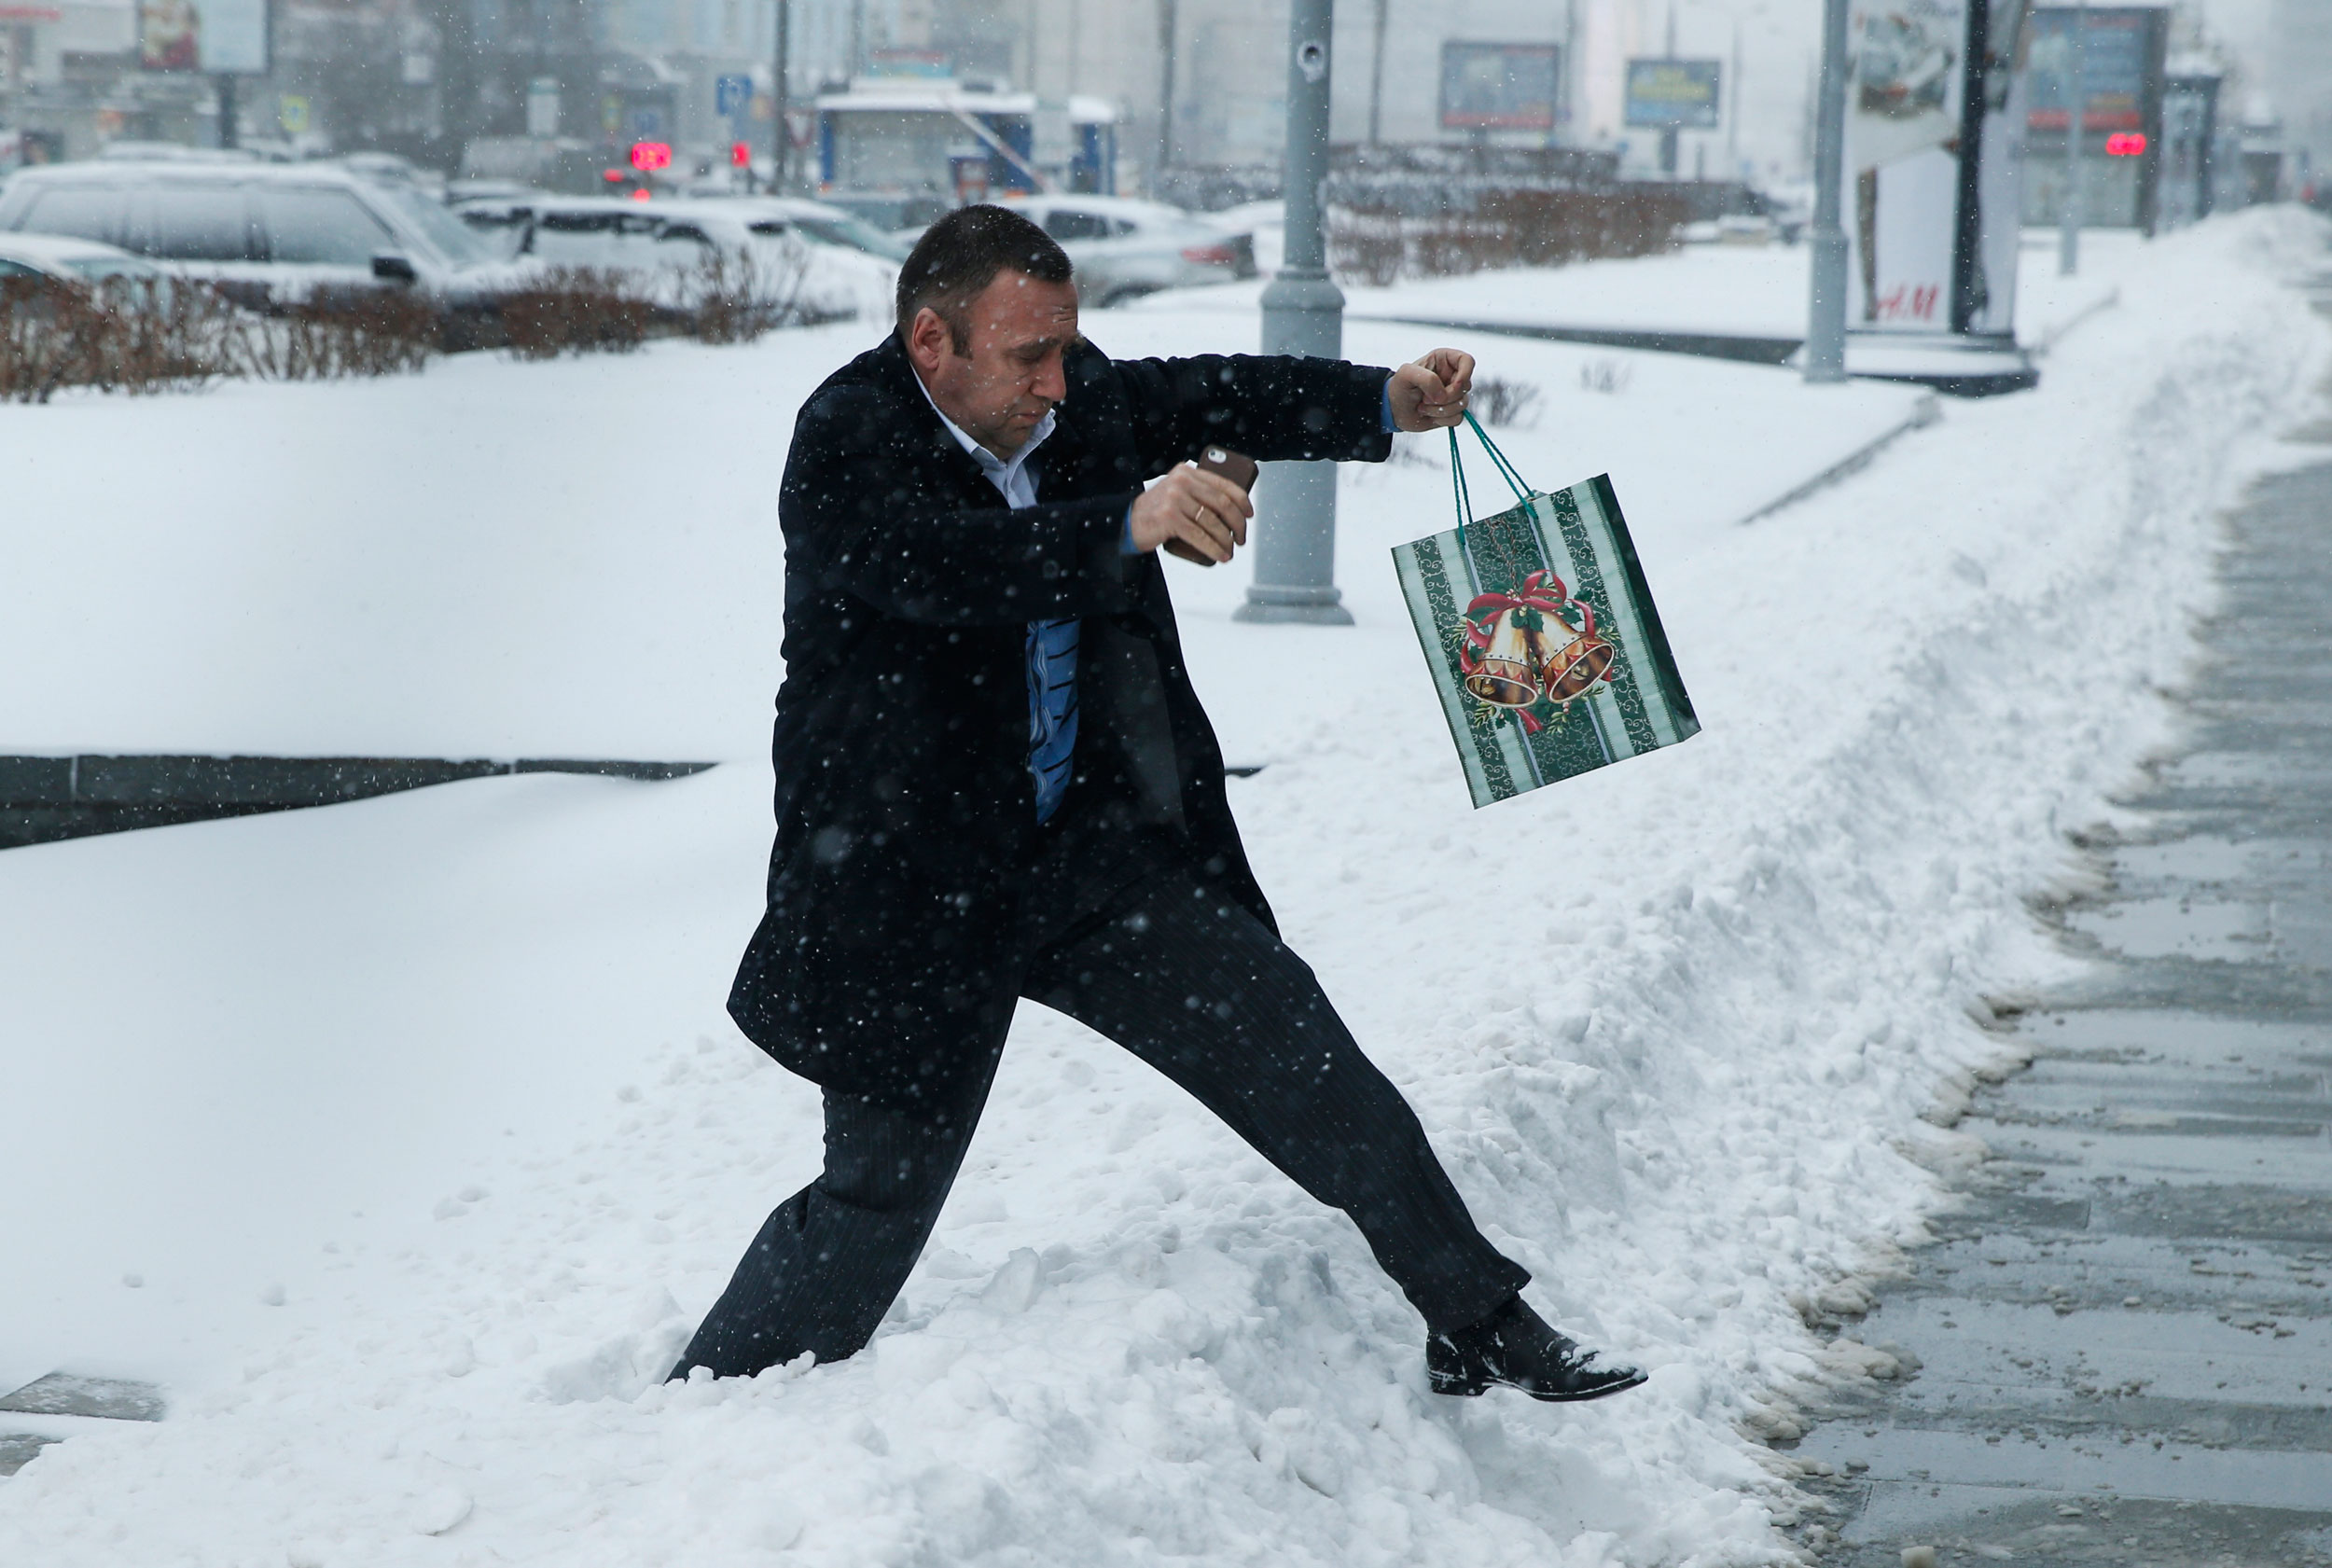 A man with a Christmas gift walks across snow during heavy snowfall in downtown Moscow on Dec. 25, 2014.